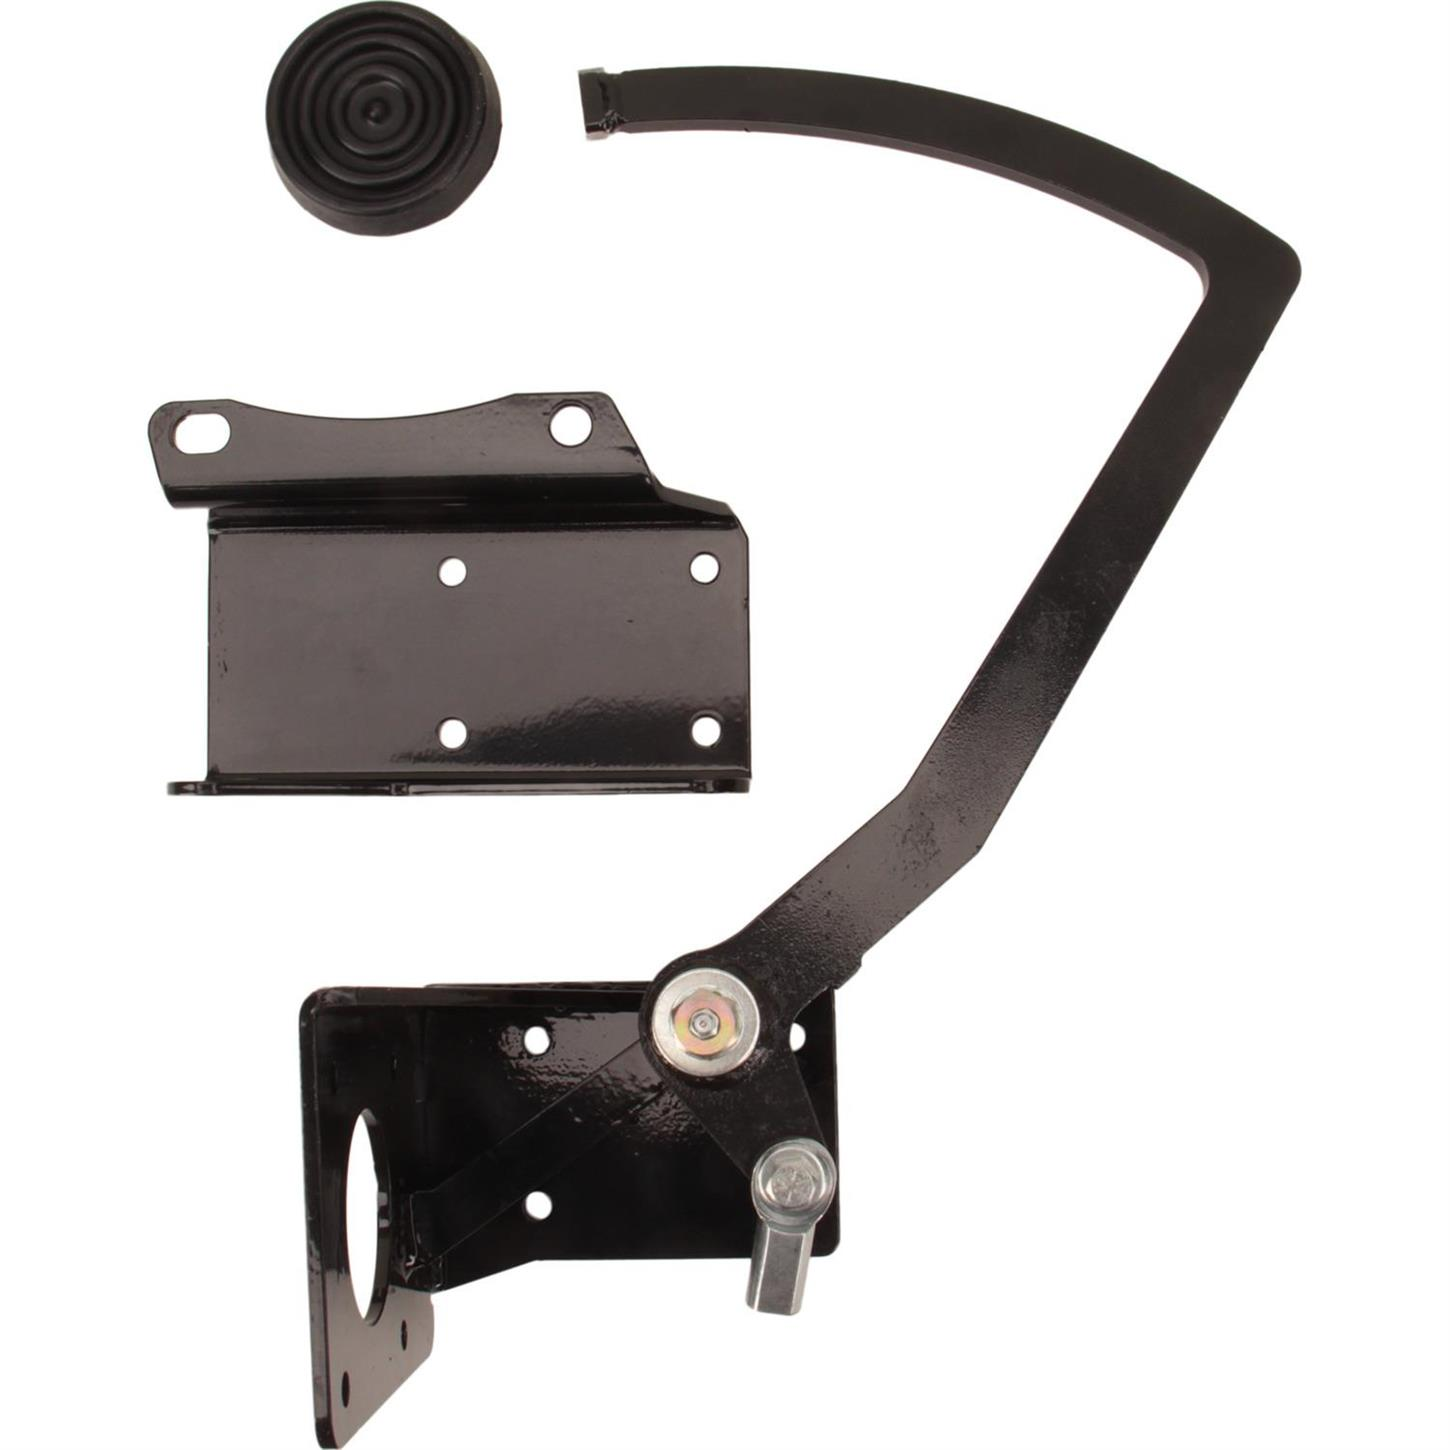 NEW REPLACEMENT 1947 TO 1959 CHEVY AND GMC TRUCK BRAKE AND CLUTCH PEDAL !